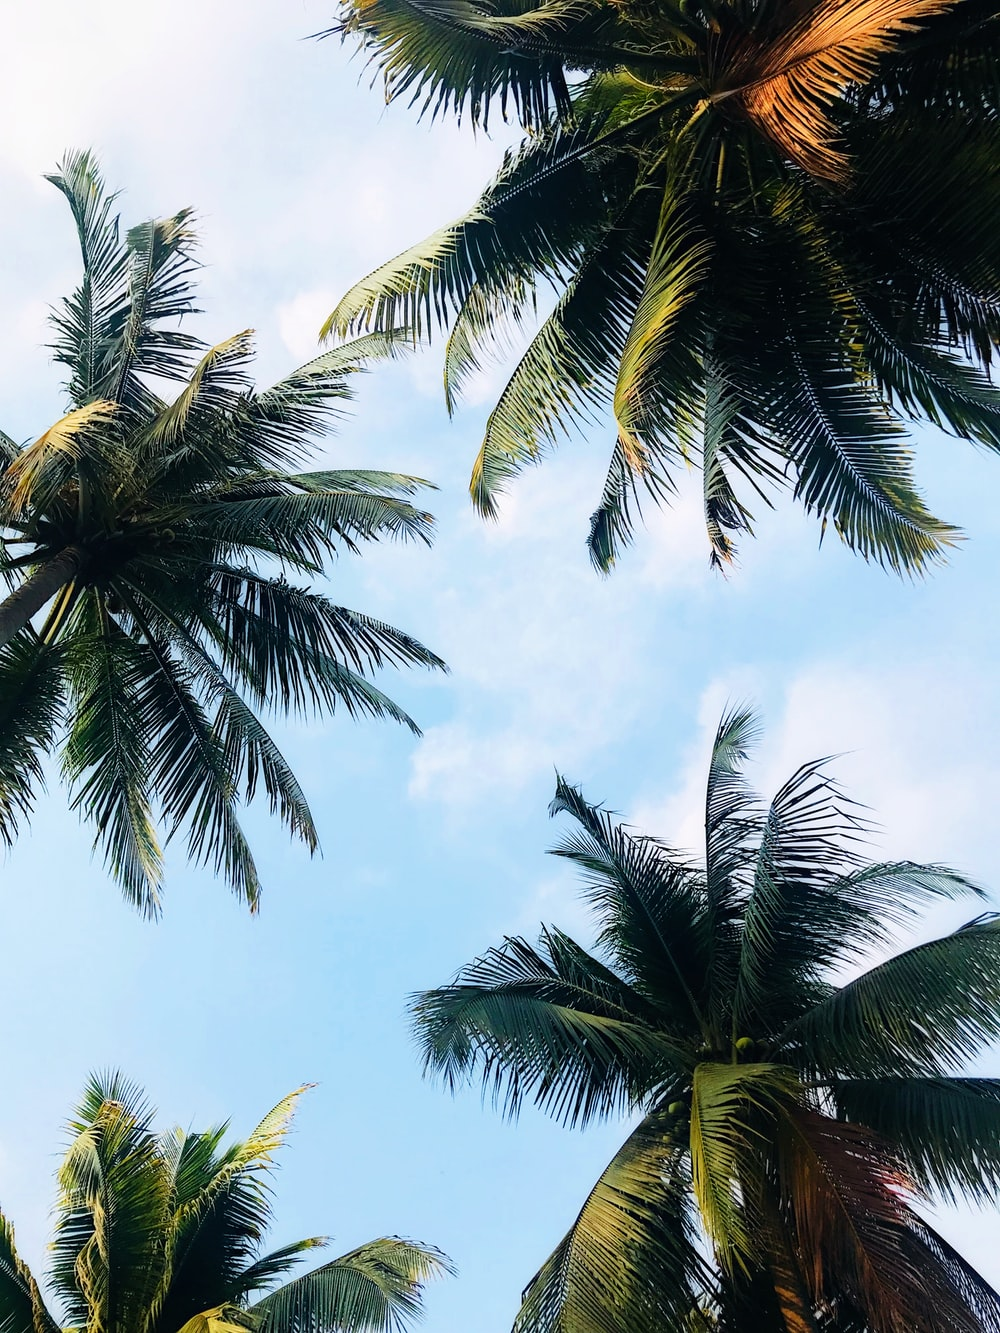 low angle photography of palm trees